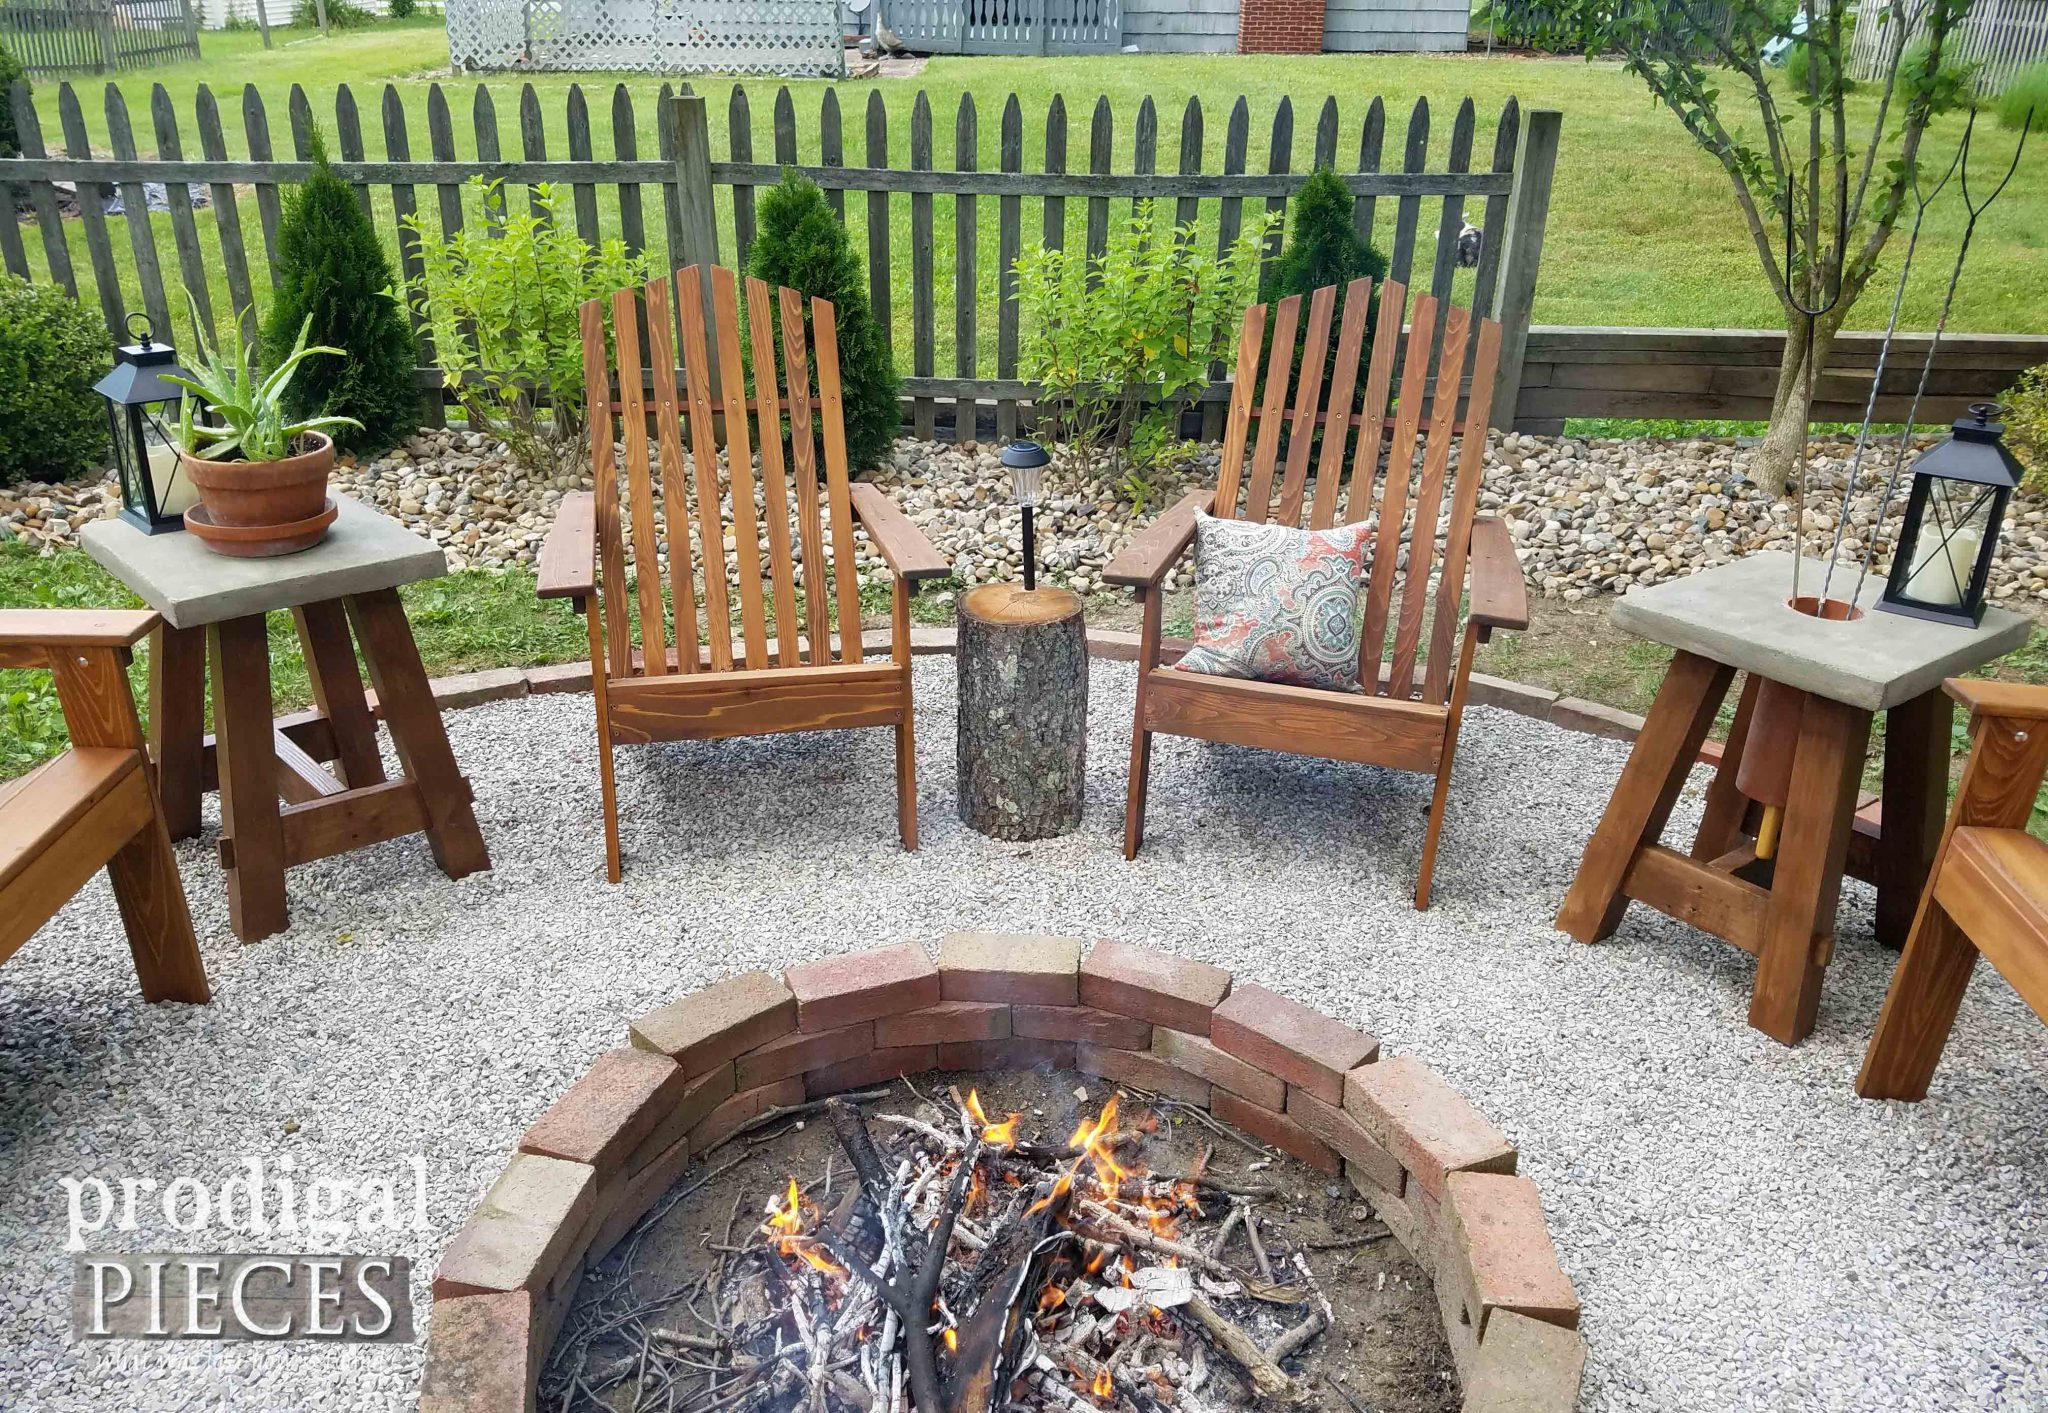 Adirondack Chairs by DFOHome for DIY Fire Pit by Prodigal Pieces | prodigalpieces.com